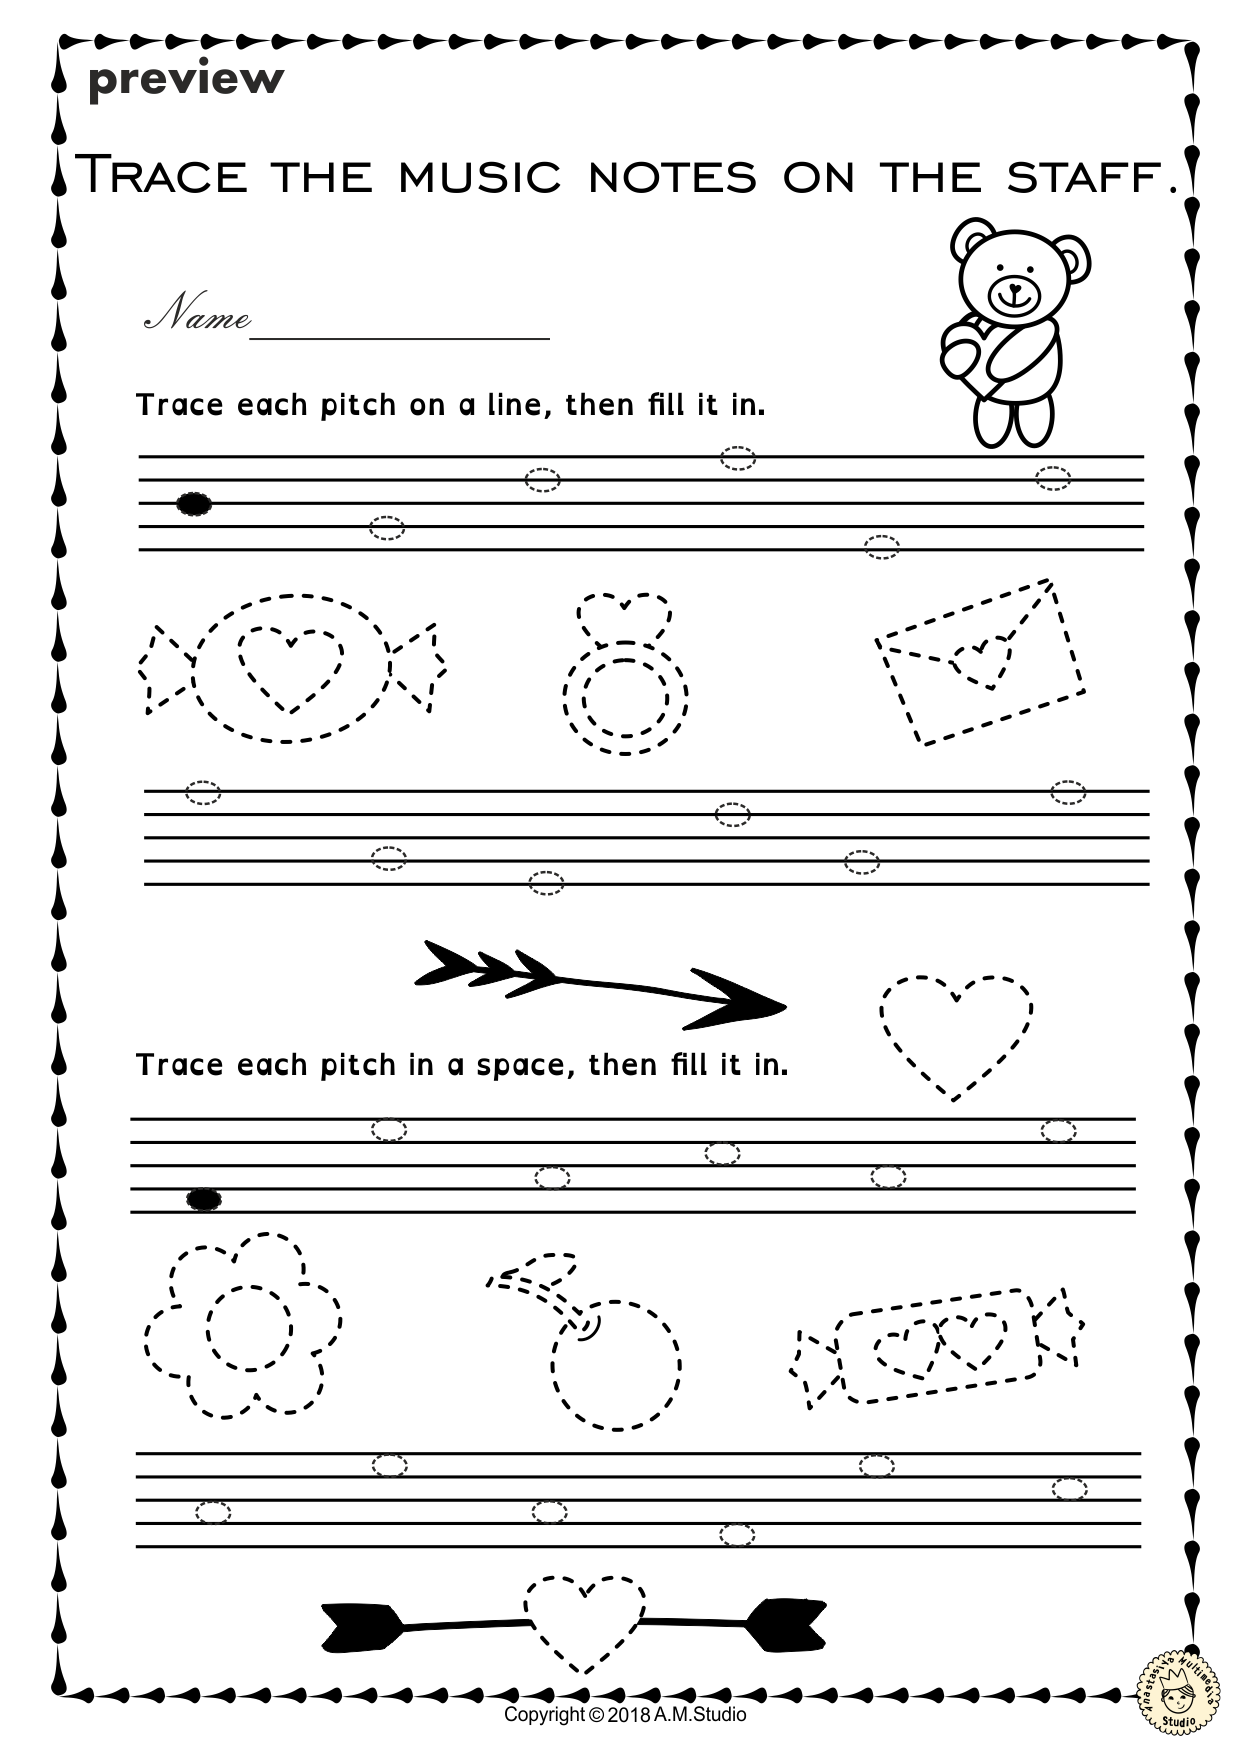 Elmused Music Musicworksheets Musiceducation Linespace Highlow Valentine Sday Amstudio Letter O Worksheets Letter O Music Worksheets [ 1758 x 1251 Pixel ]